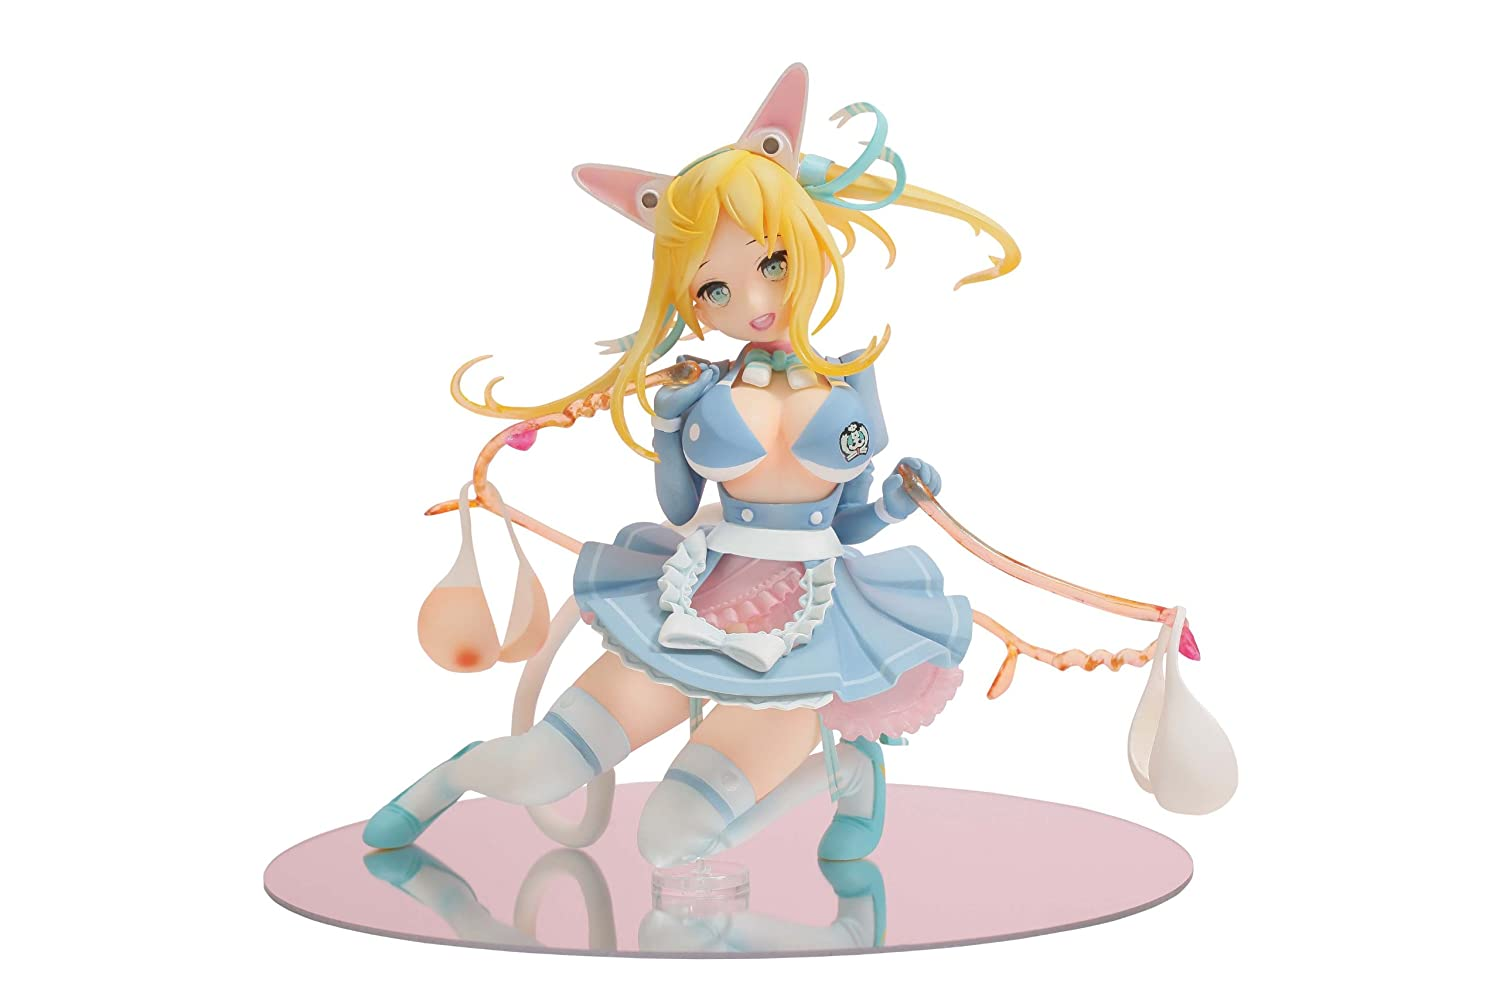 Aoshima Funny Knights Rope Skipping Maid Roppu PVC Figure (japan import)